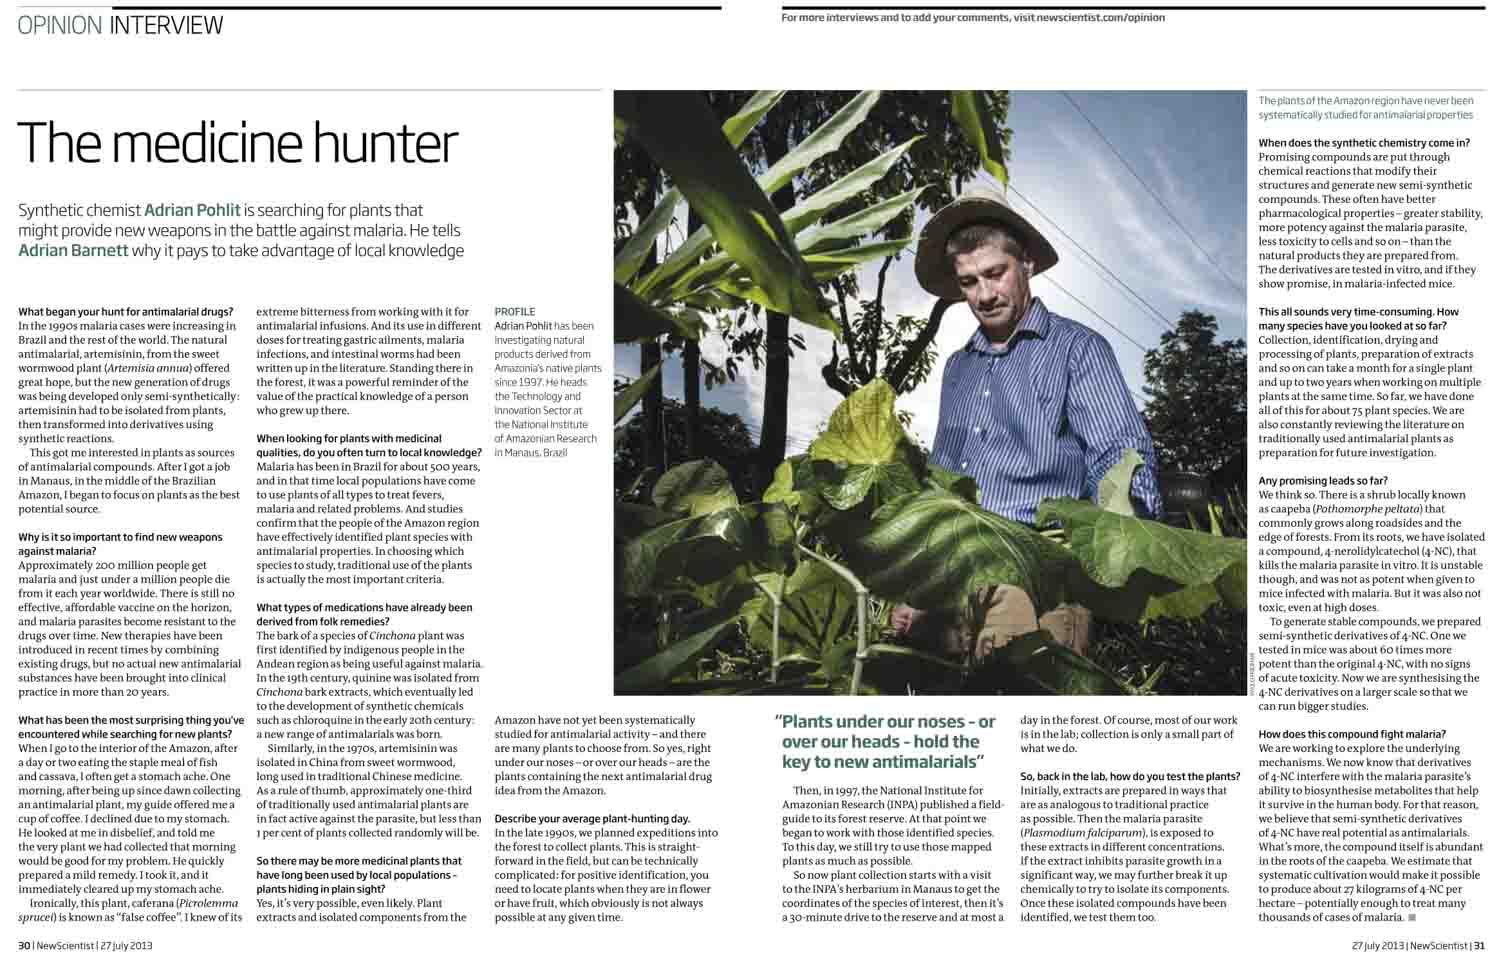 Scientist Adrian Pohlit, assignment in Manaus, Amazon for the New Scientist, UK